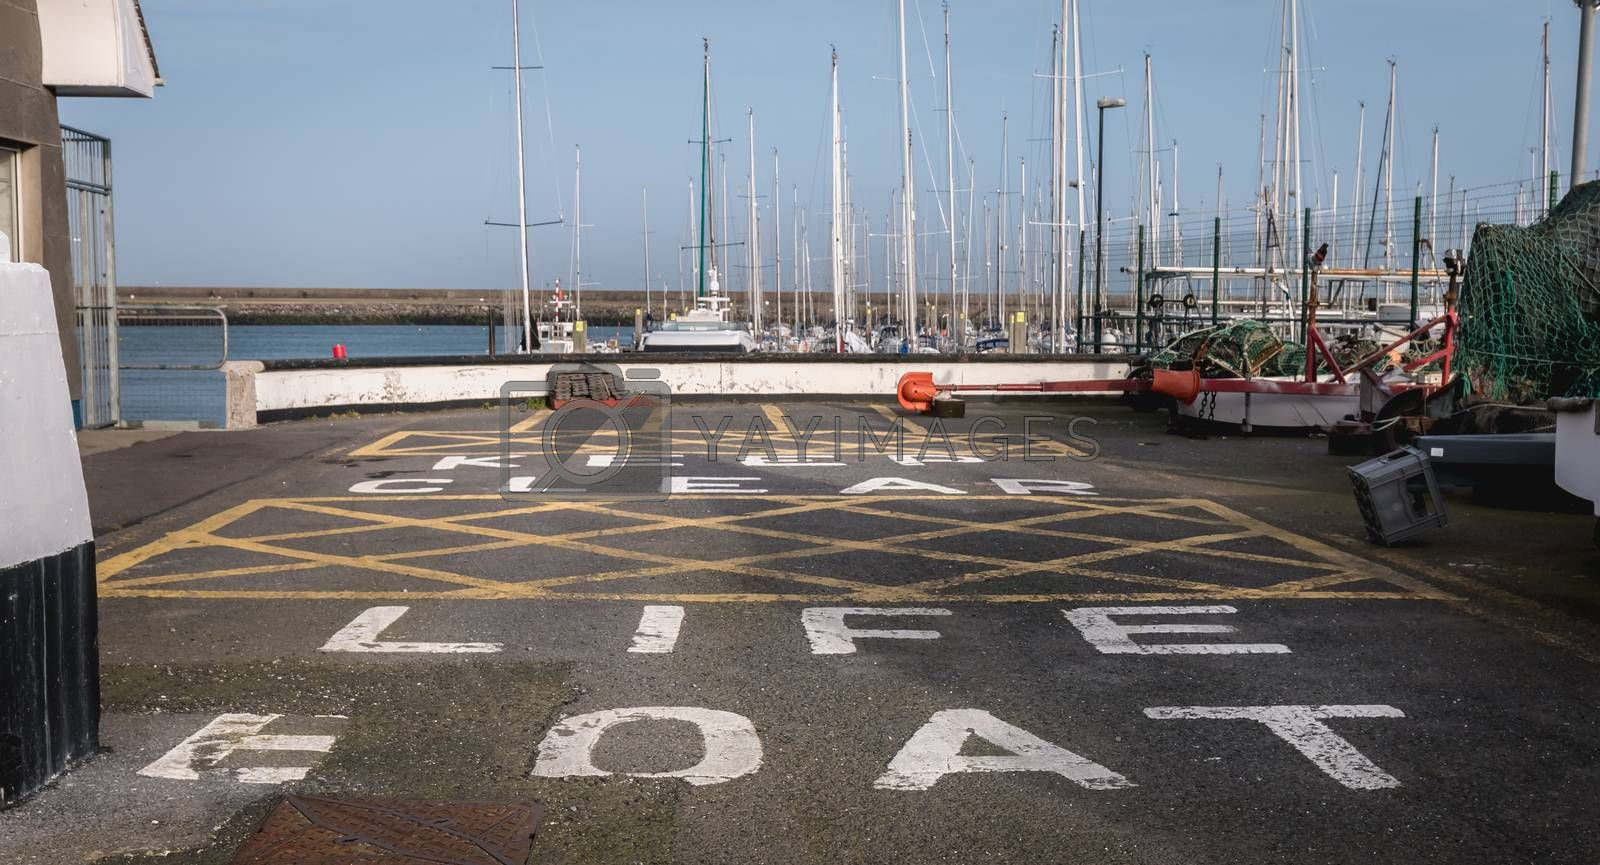 Howth near Dublin, Ireland - February 15, 2019: Keep clear life boat painting on bitumen from a boat care and maintenance area in the harbor on a winter day